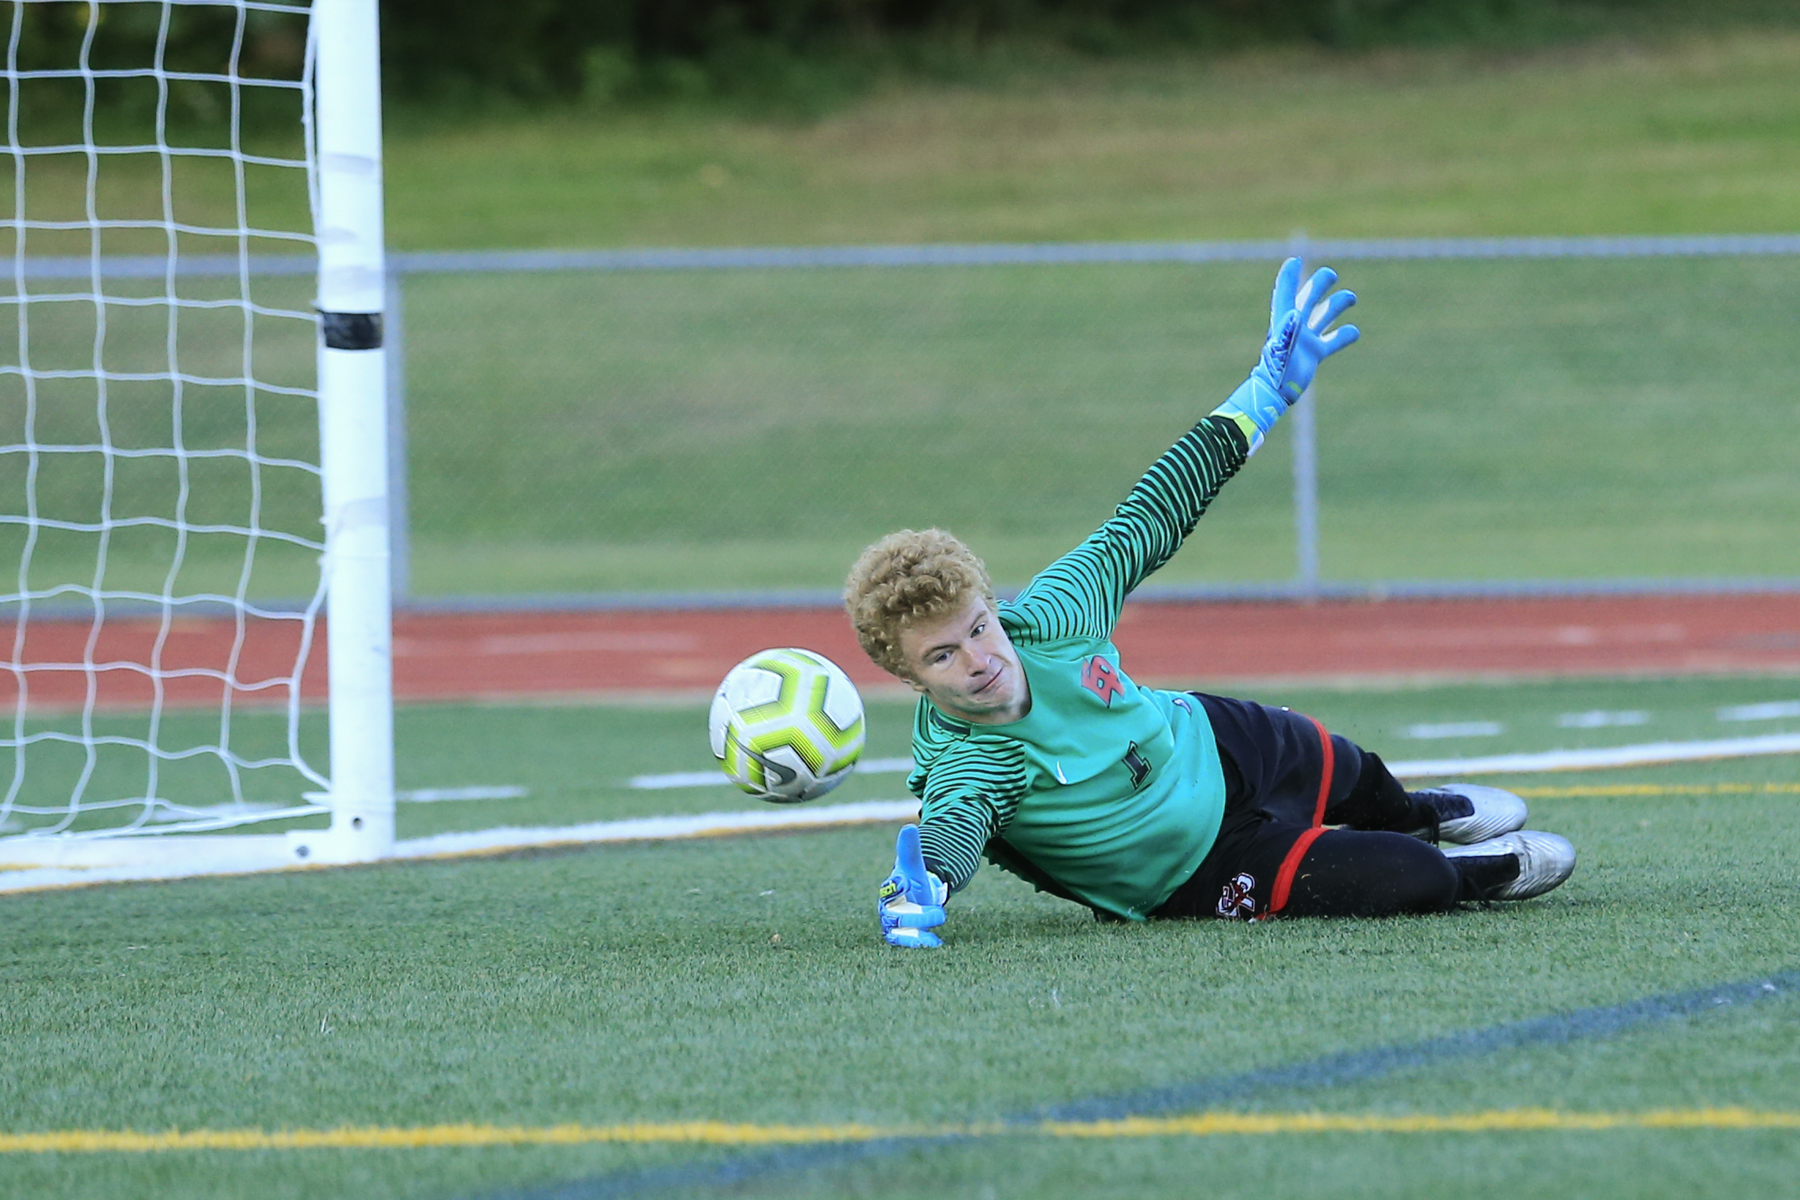 Eden Prairie goalkeeper Steven Mattison (1) dives to make a save in a Lake Conference tilt against Minnetonka Thursday evening. The Eagles fell to the Skippers 1-0 in Eden Prairie. Photo by Jeff Lawler, SportsEngine